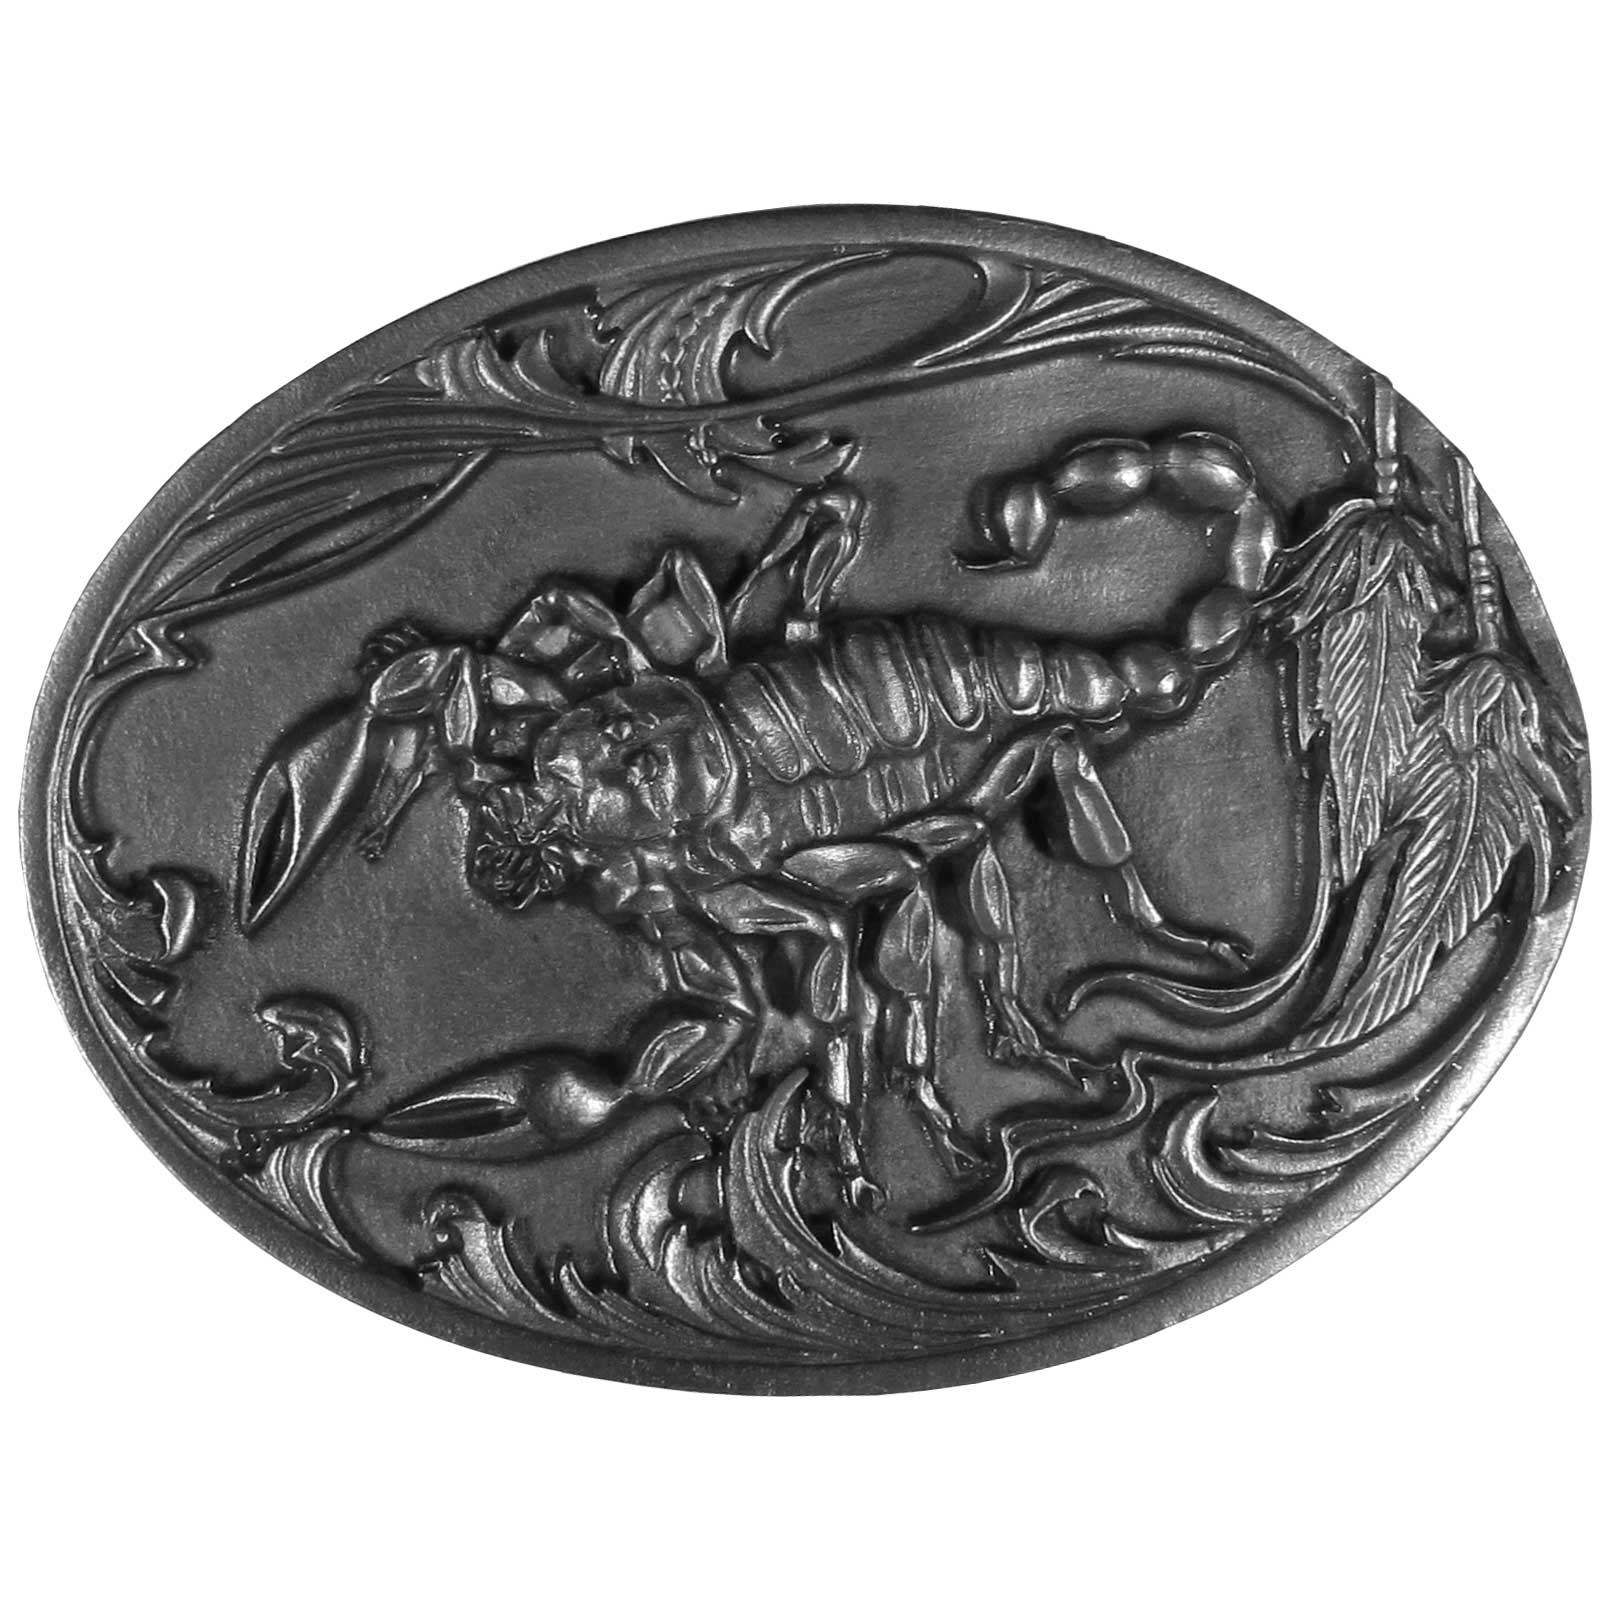 Scorpion Antiqued Belt Buckle